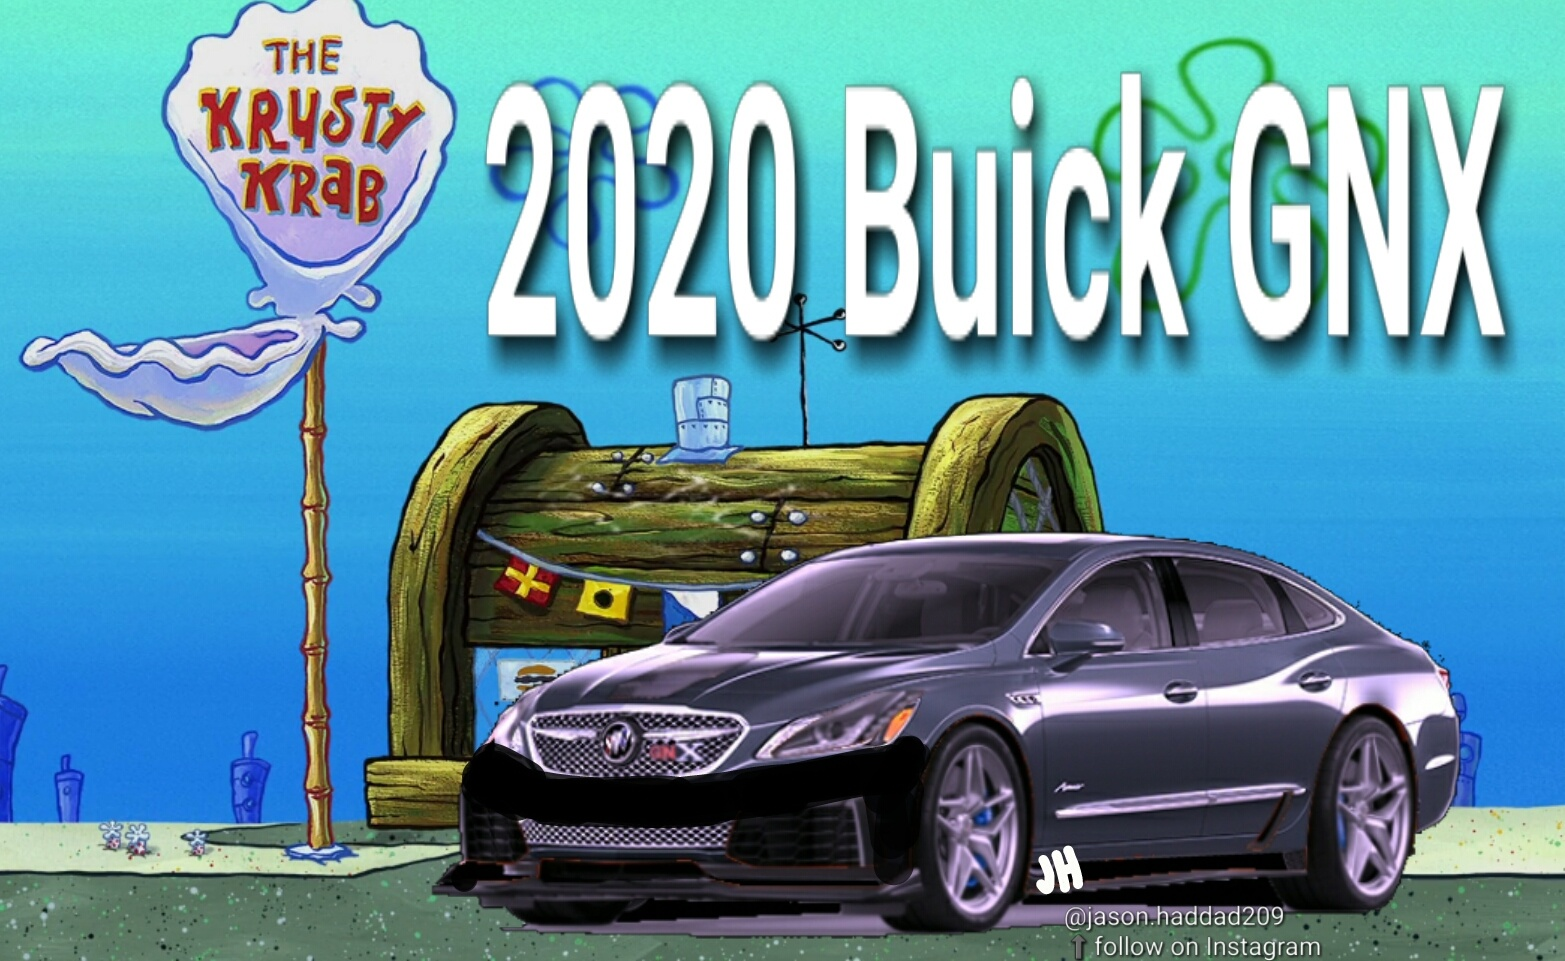 2020 Buick Lacrosse Gnx Faster Than Cadillac Cts V Gearheads